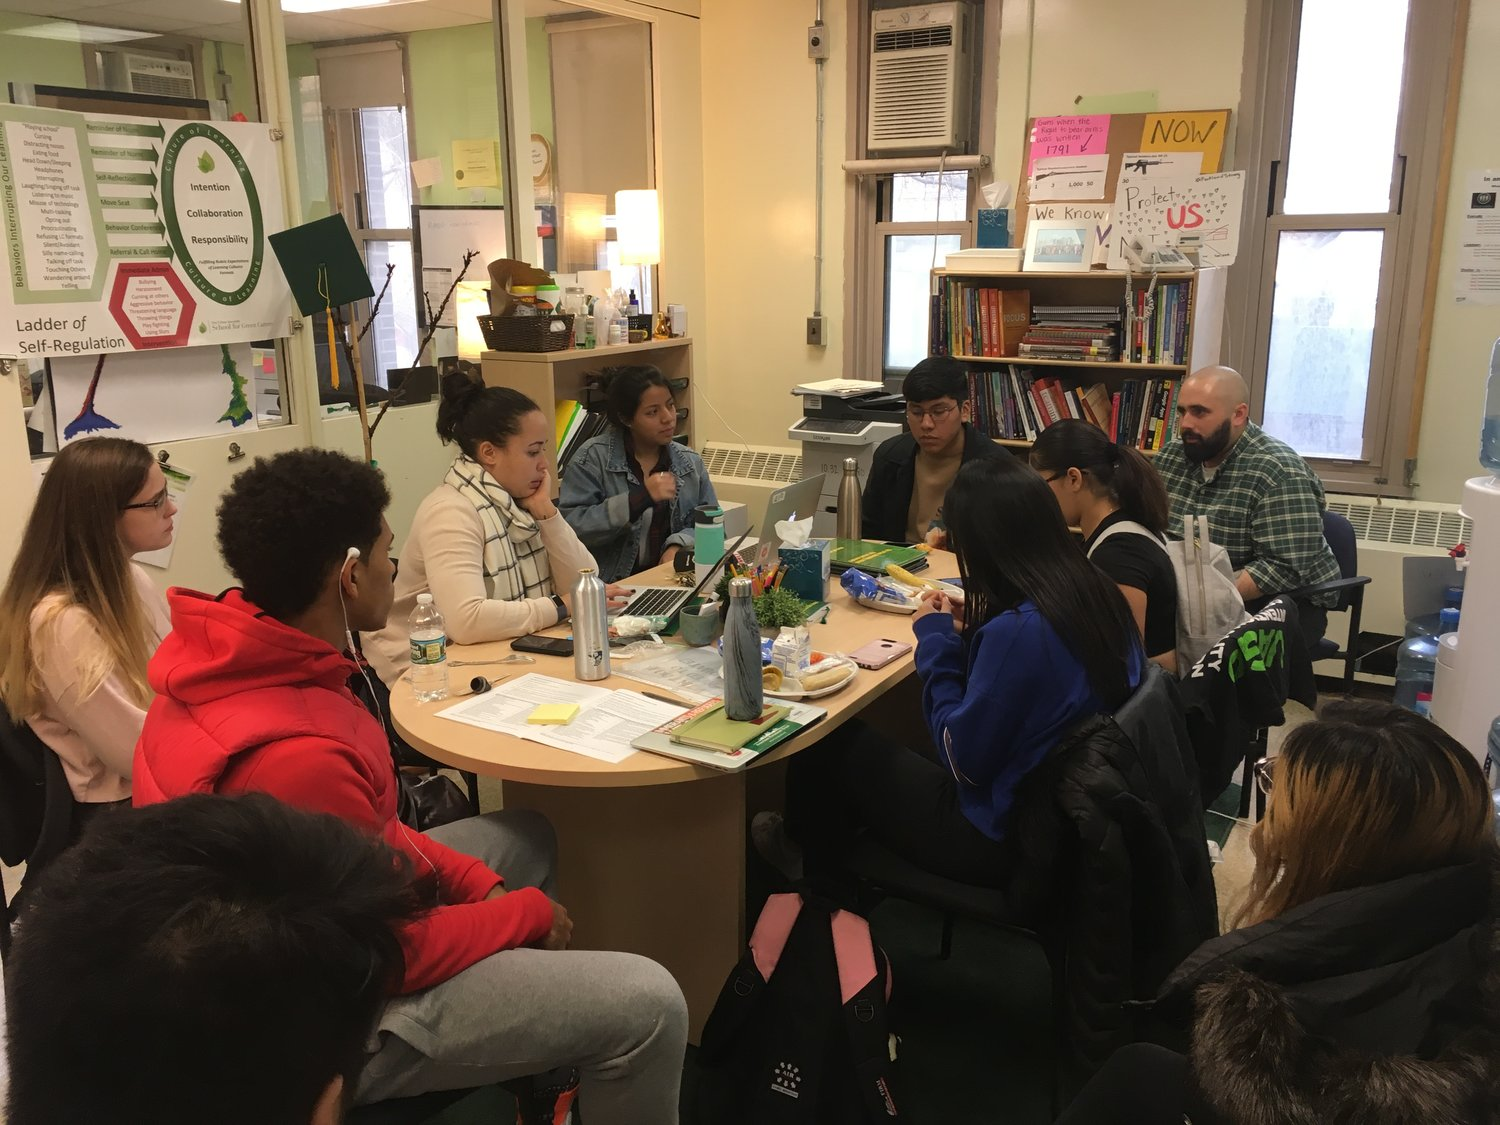 Leadership Structure — The Urban Assembly School for Green